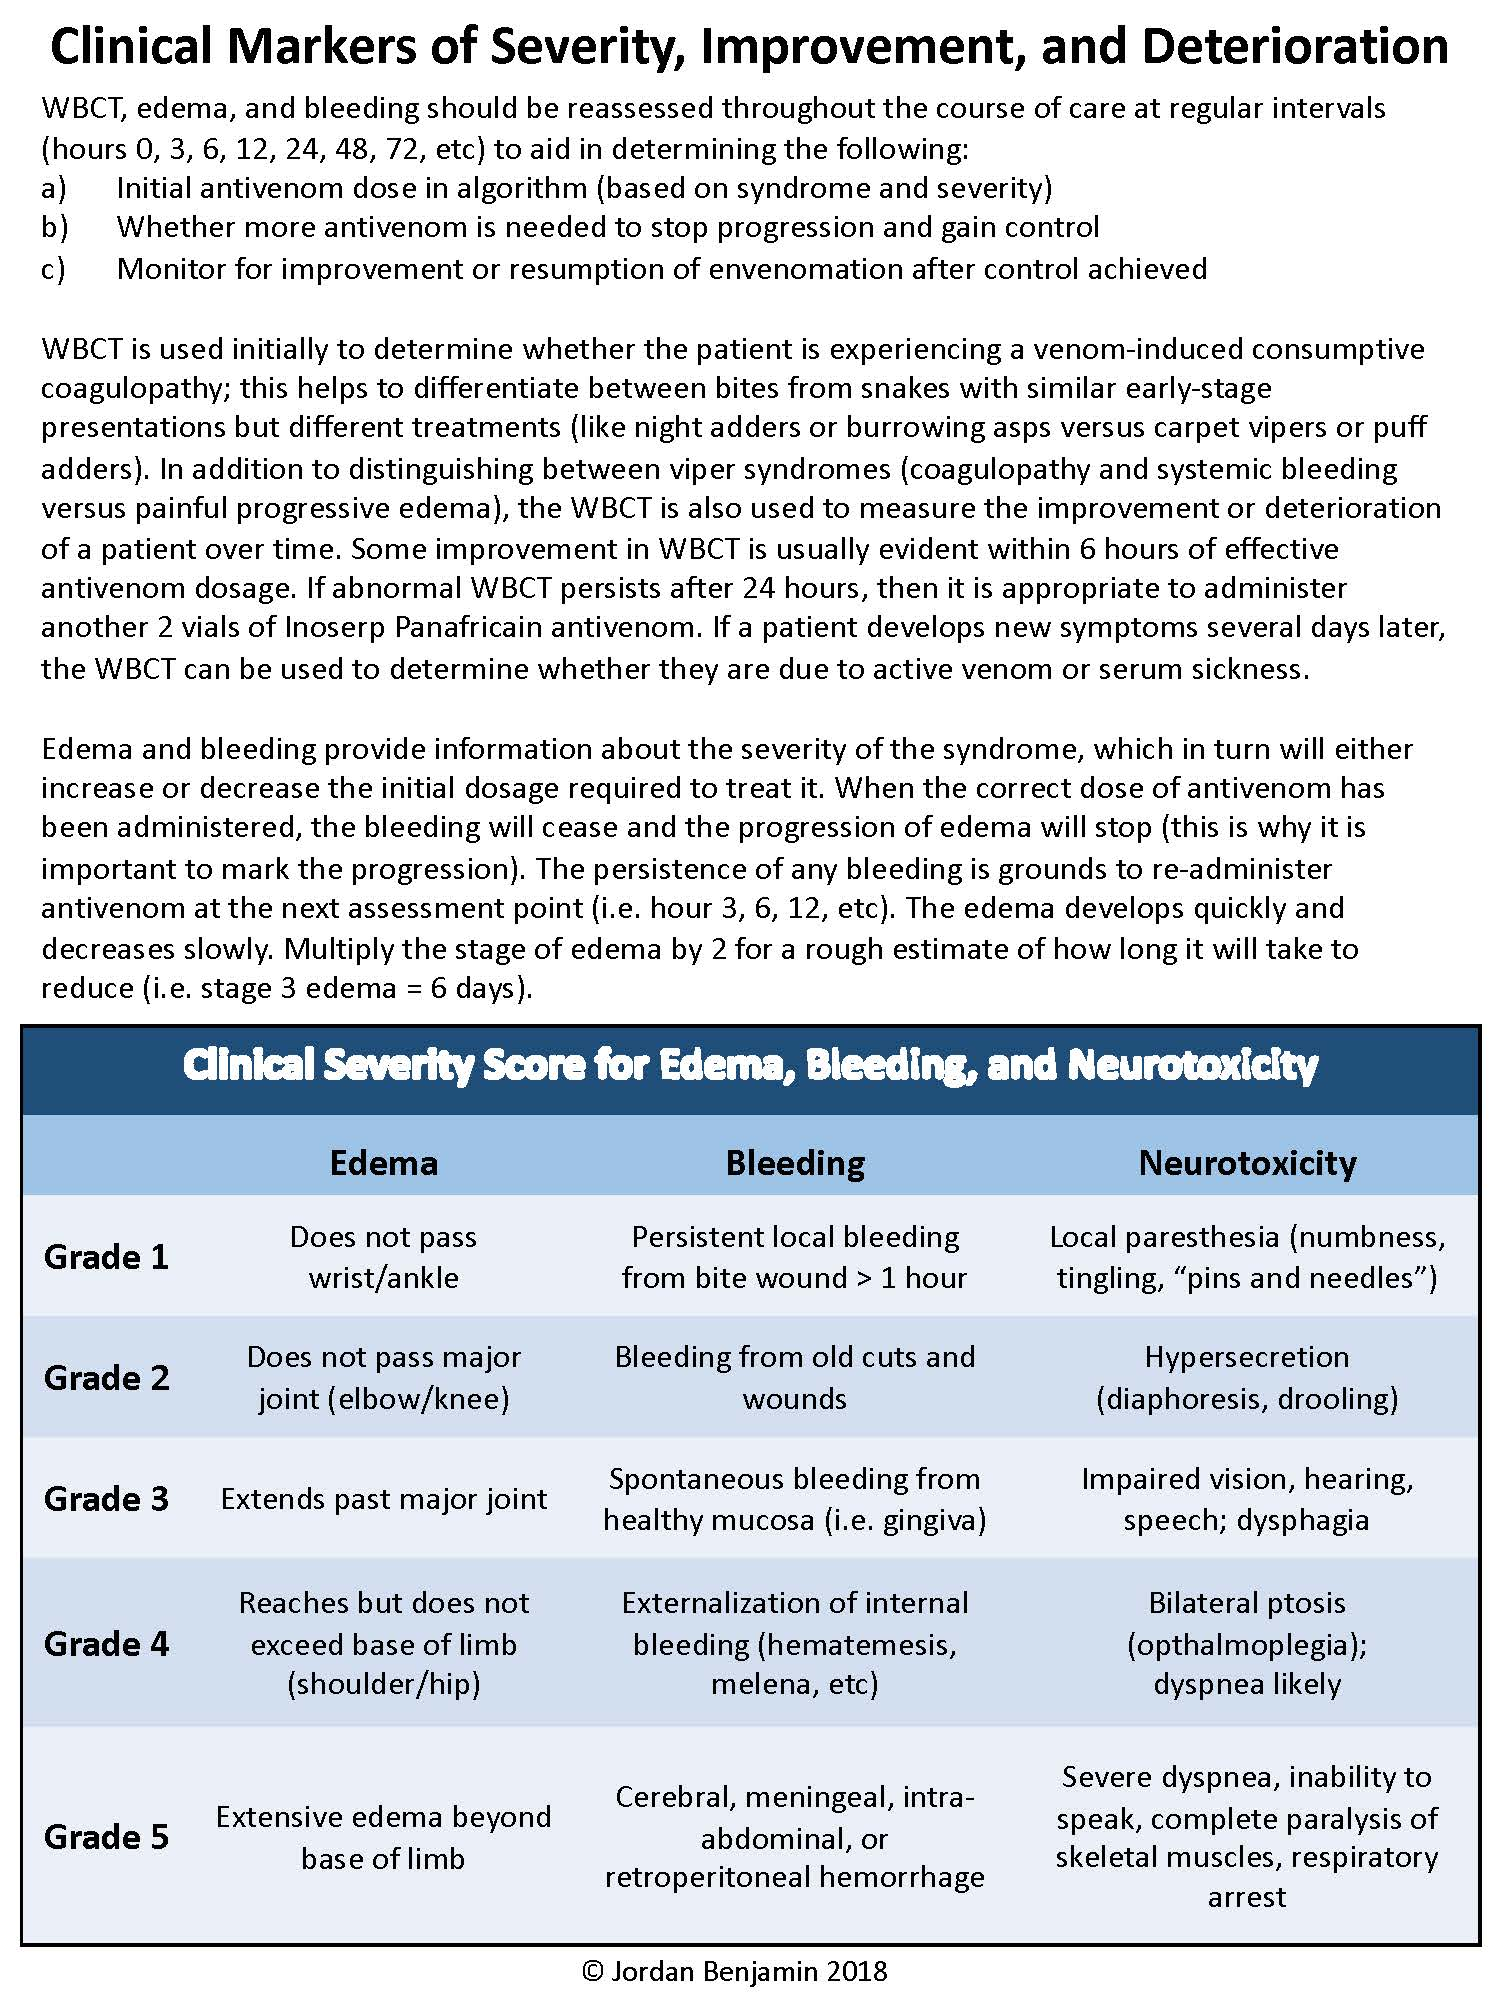 Clinical Markers of Severity, Improvement, and Deterioration.jpg